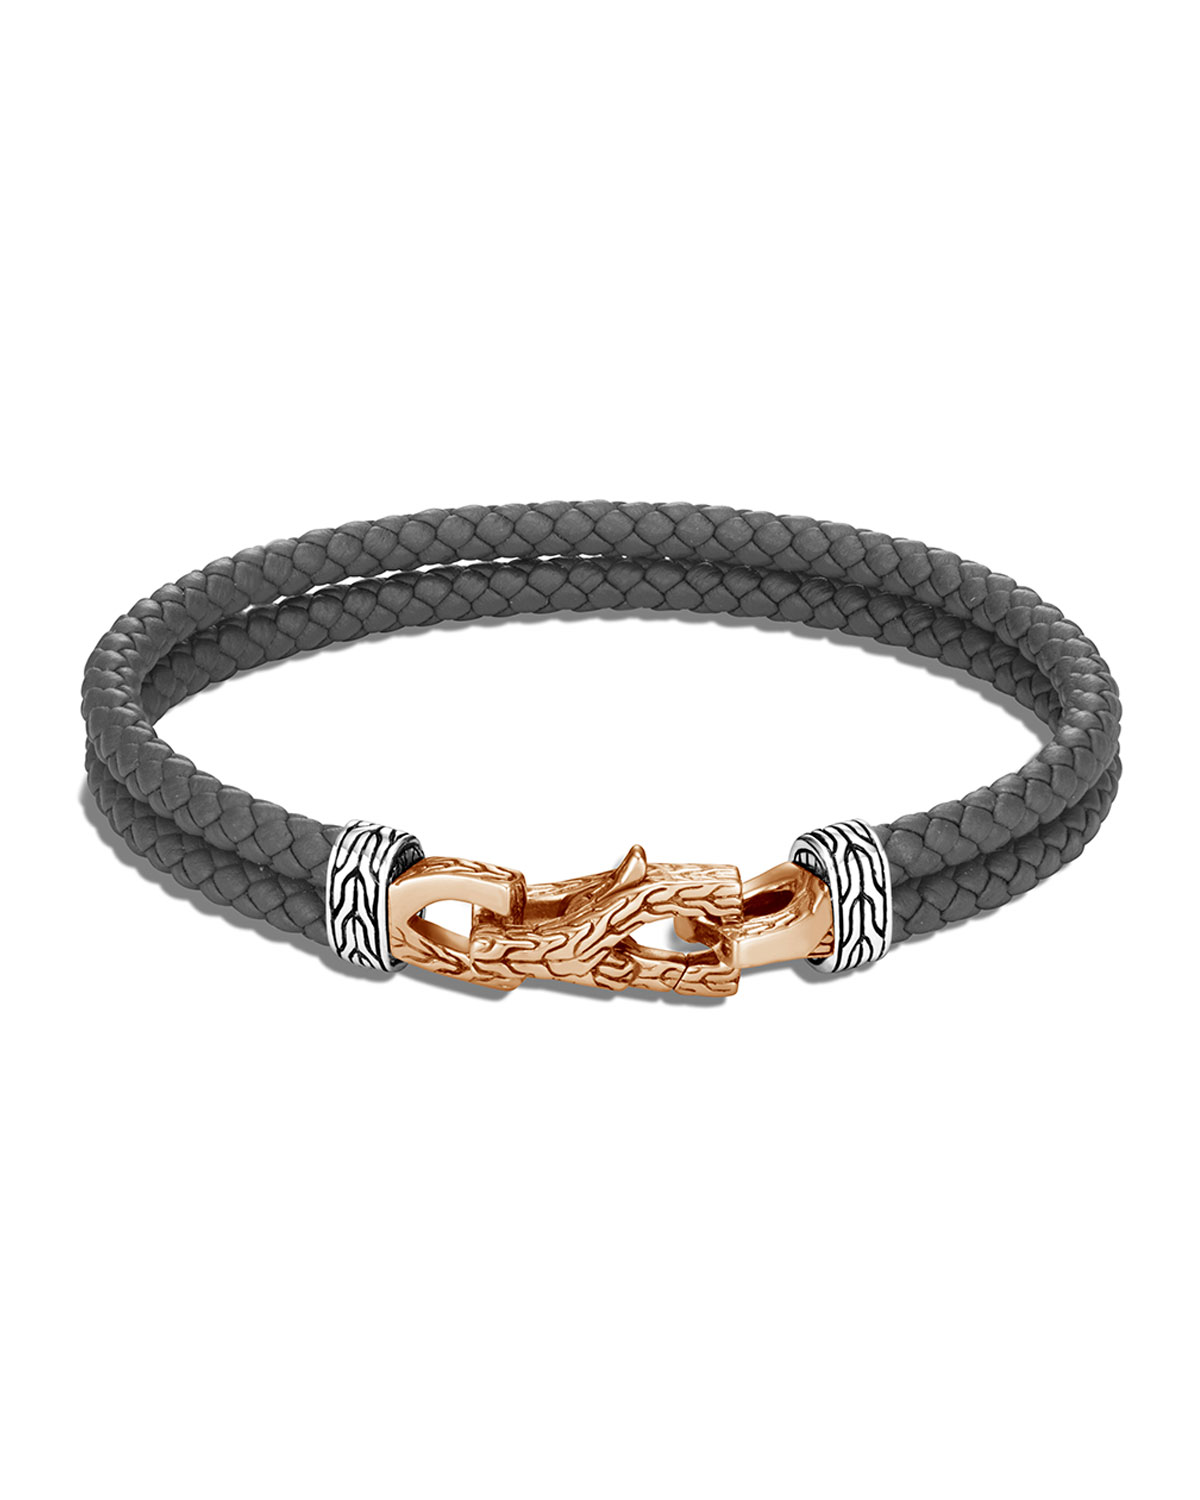 John Hardy Men's Asli Classic Chain Woven Leather Bracelet with Bronze Clasp, Size M-L